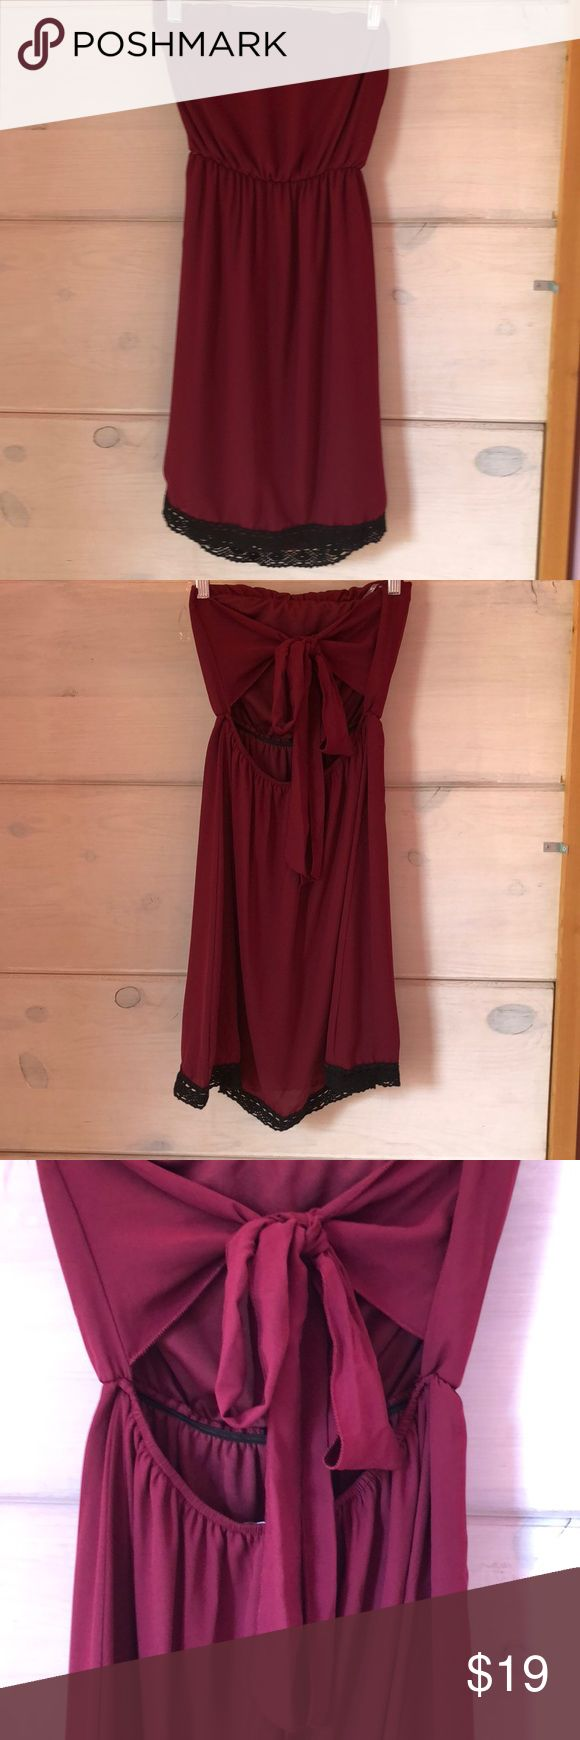 "NWT Burgundy/Black Strapless Gameday Dress This cute strapless dress ties into a bow in the back. Burgundy with black crochet trim. Lined. Made in the USA.  Measures approximately 28"" long.   Feel free to ask any questions. I accept reasonable offers. Dresses Strapless"